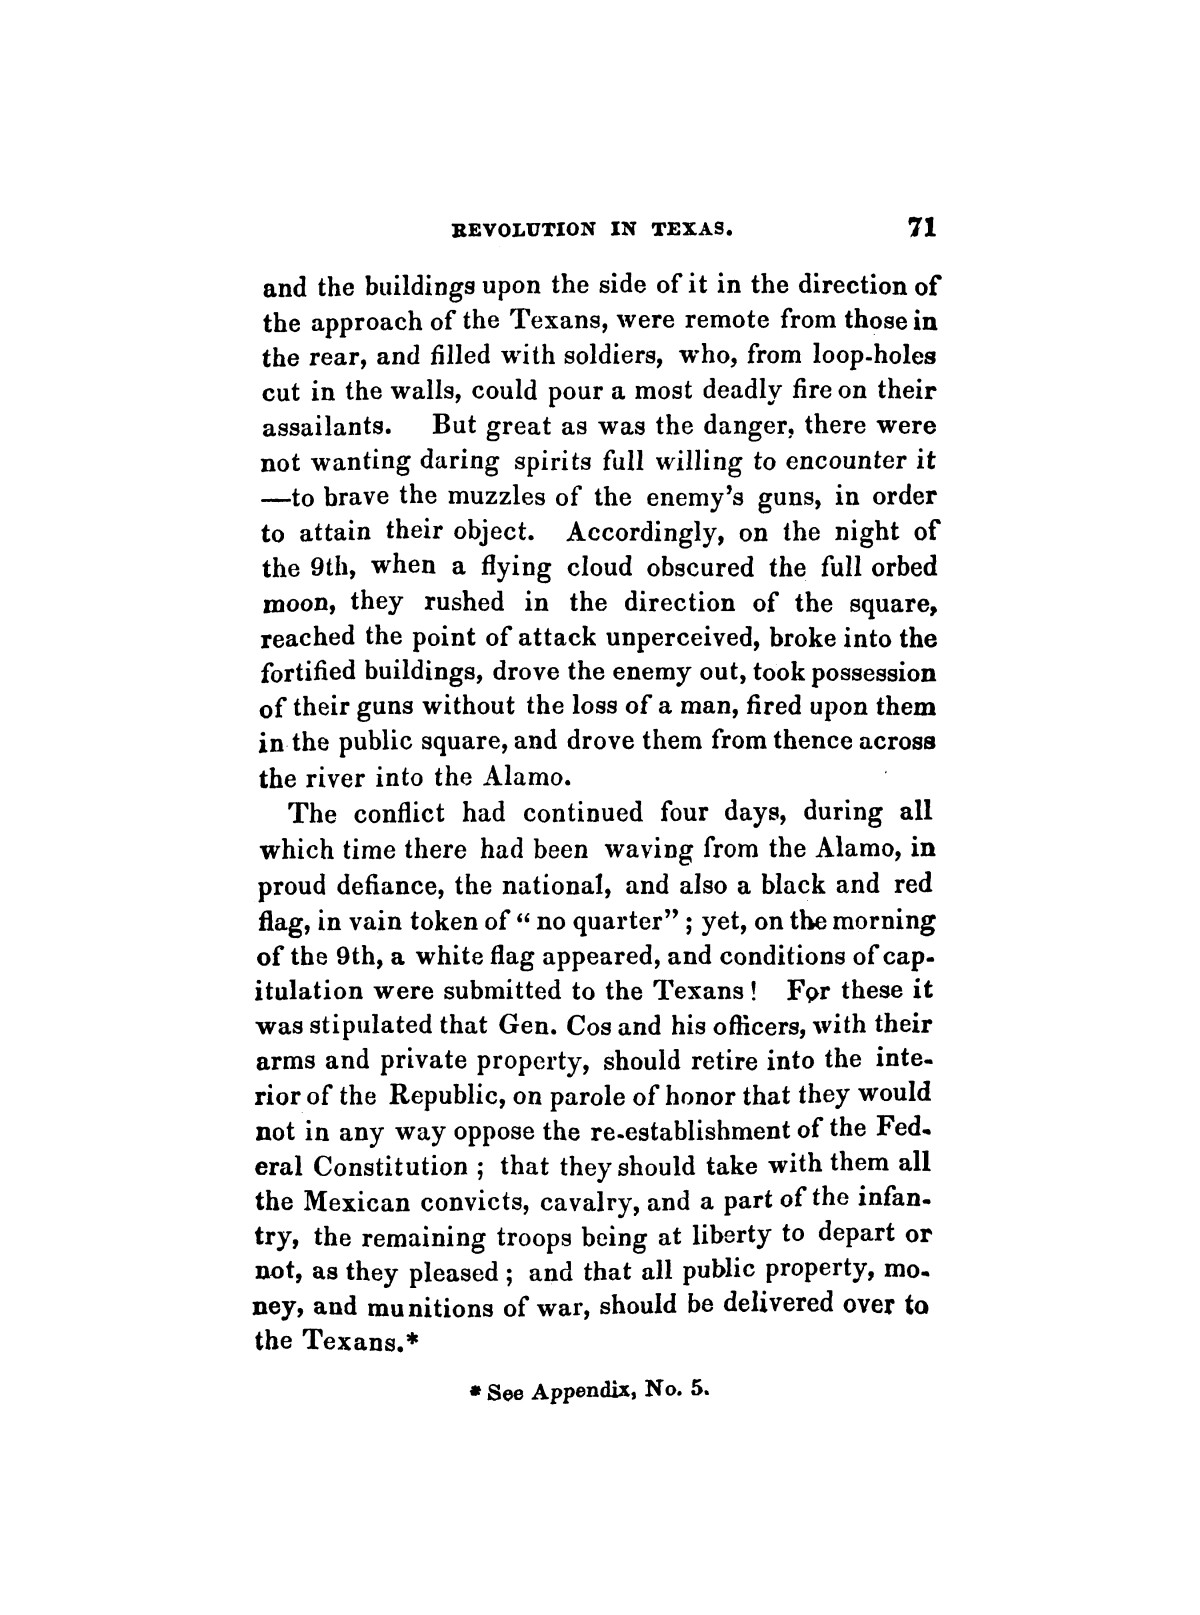 History of the revolution in Texas, particularly of the war of 1835 & '36; together with the latest geographical, topographical, and statistical accounts of the country, from the most authentic sources. Also, an appendix. By the Rev. C. Newell.                                                                                                      [Sequence #]: 83 of 227